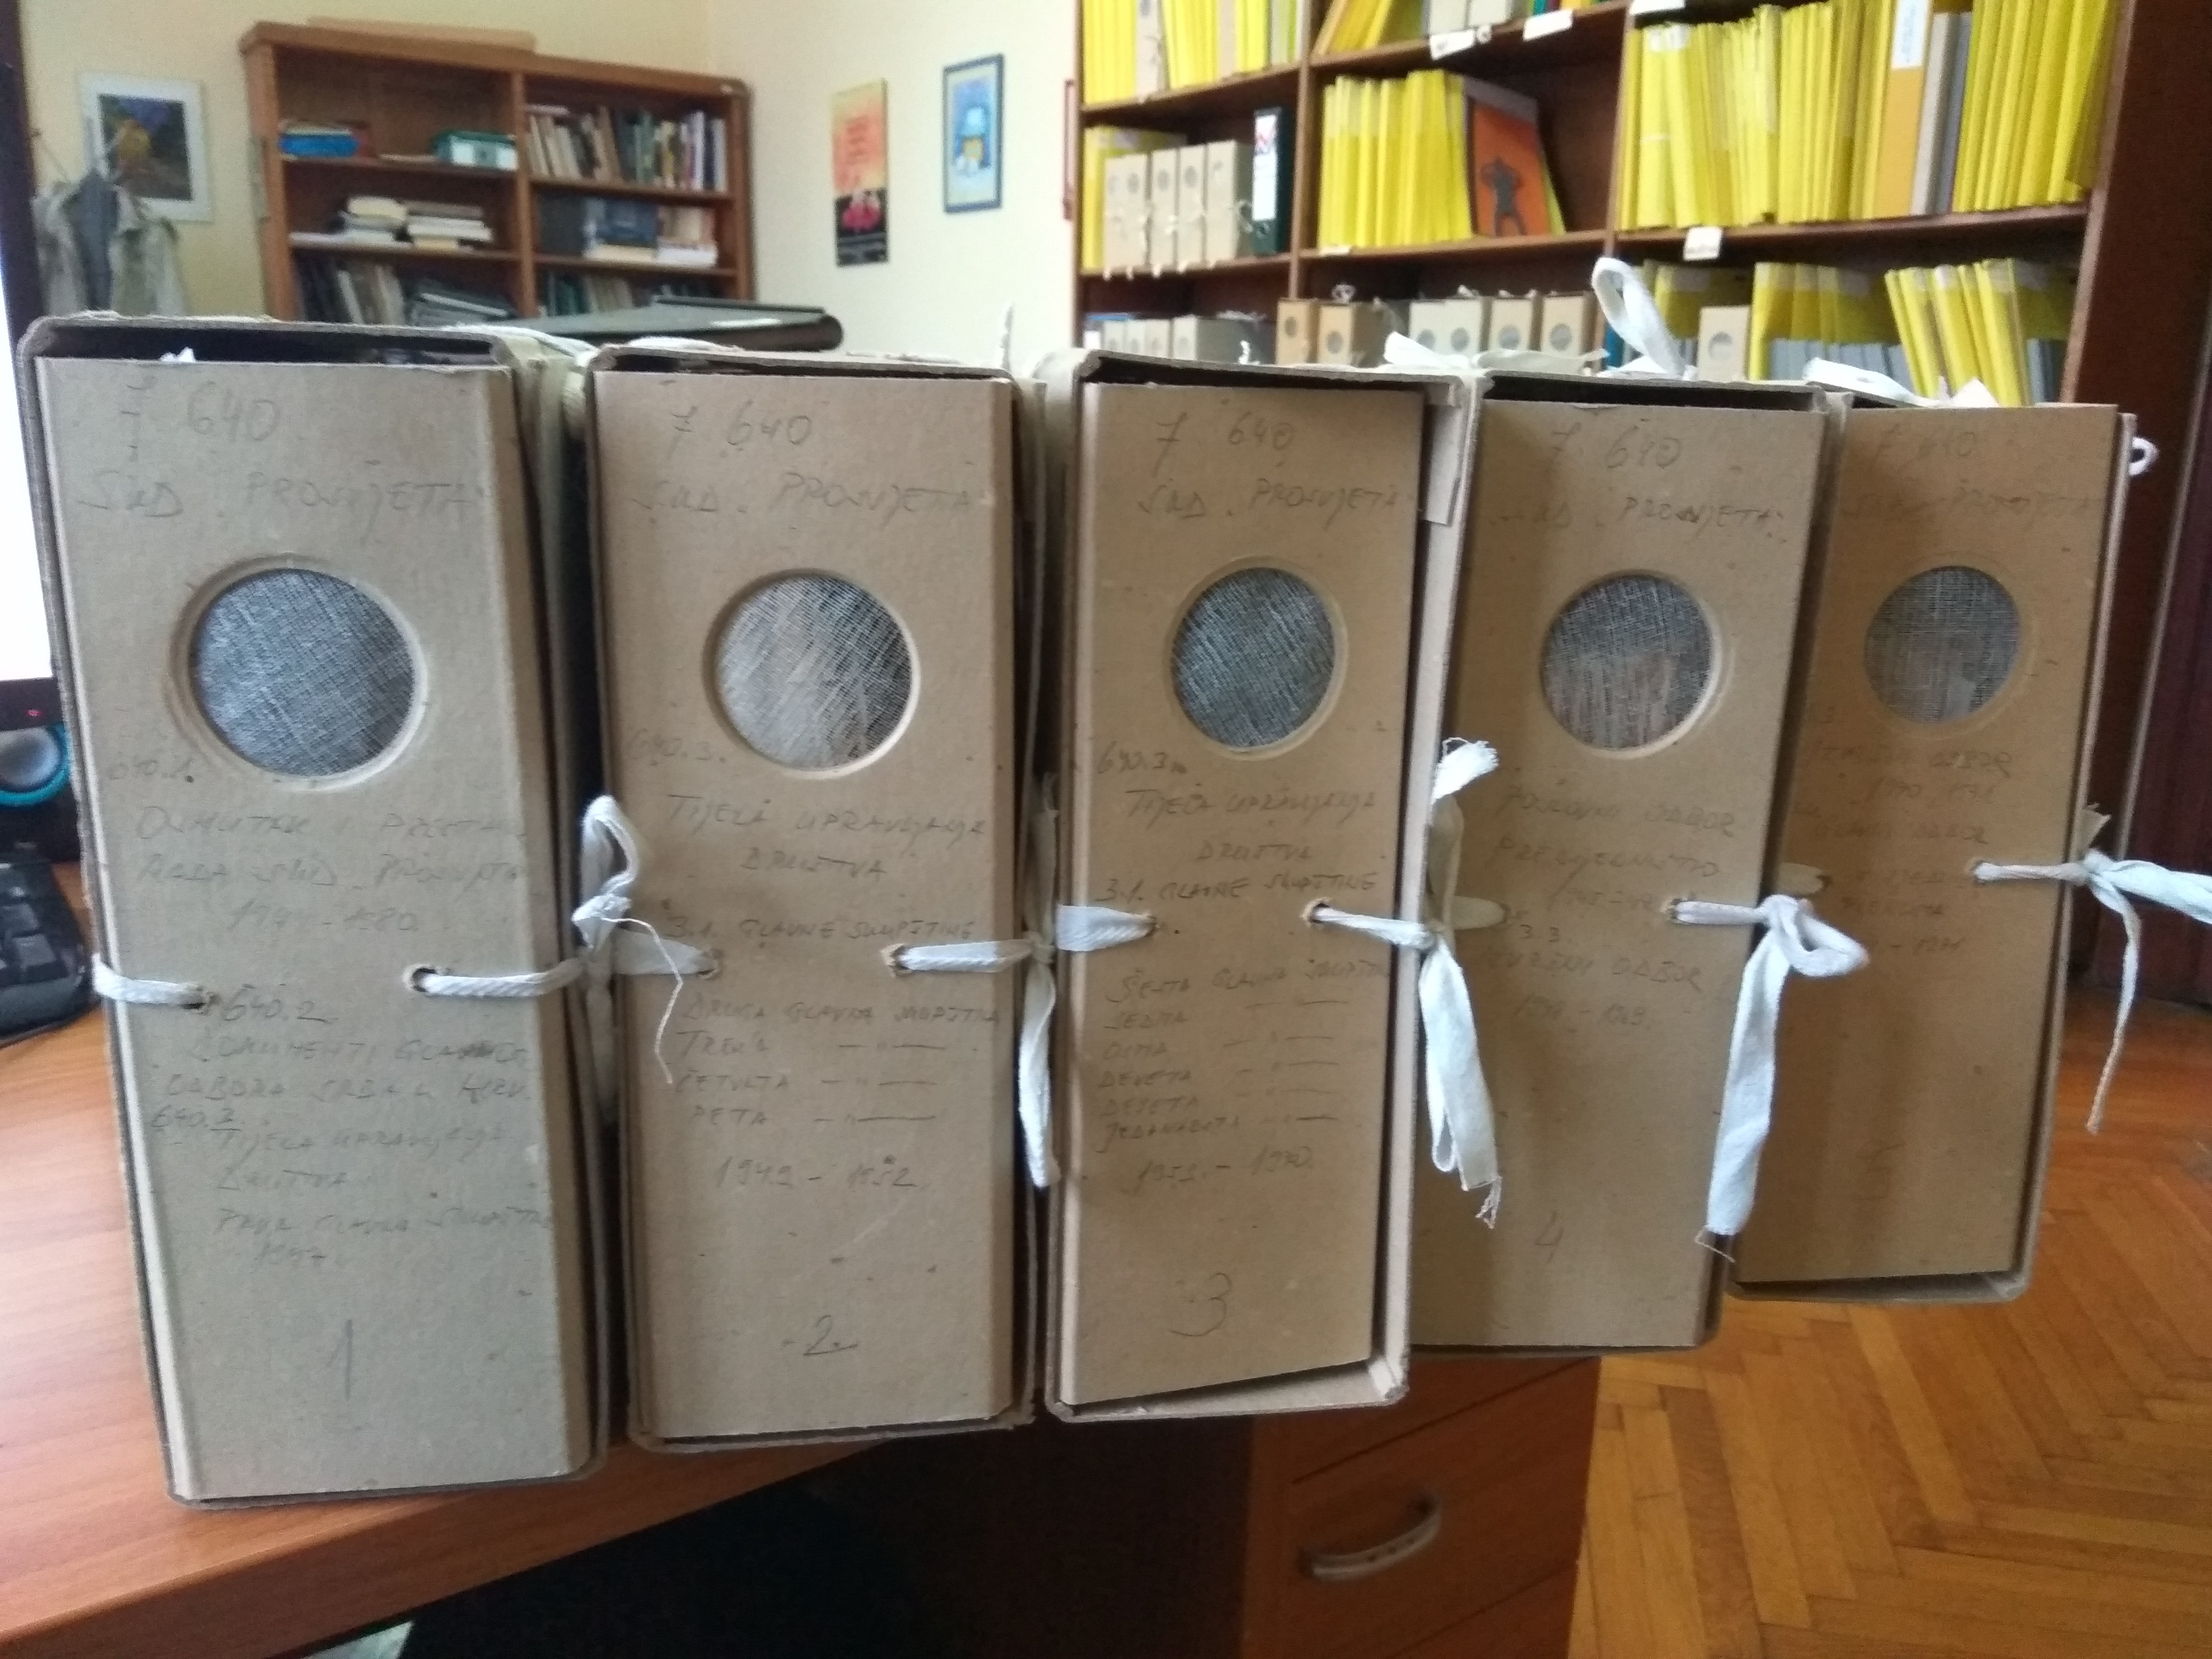 Boxes No. 1-5 of SCA Prosvjeta in the Croatian State Archives